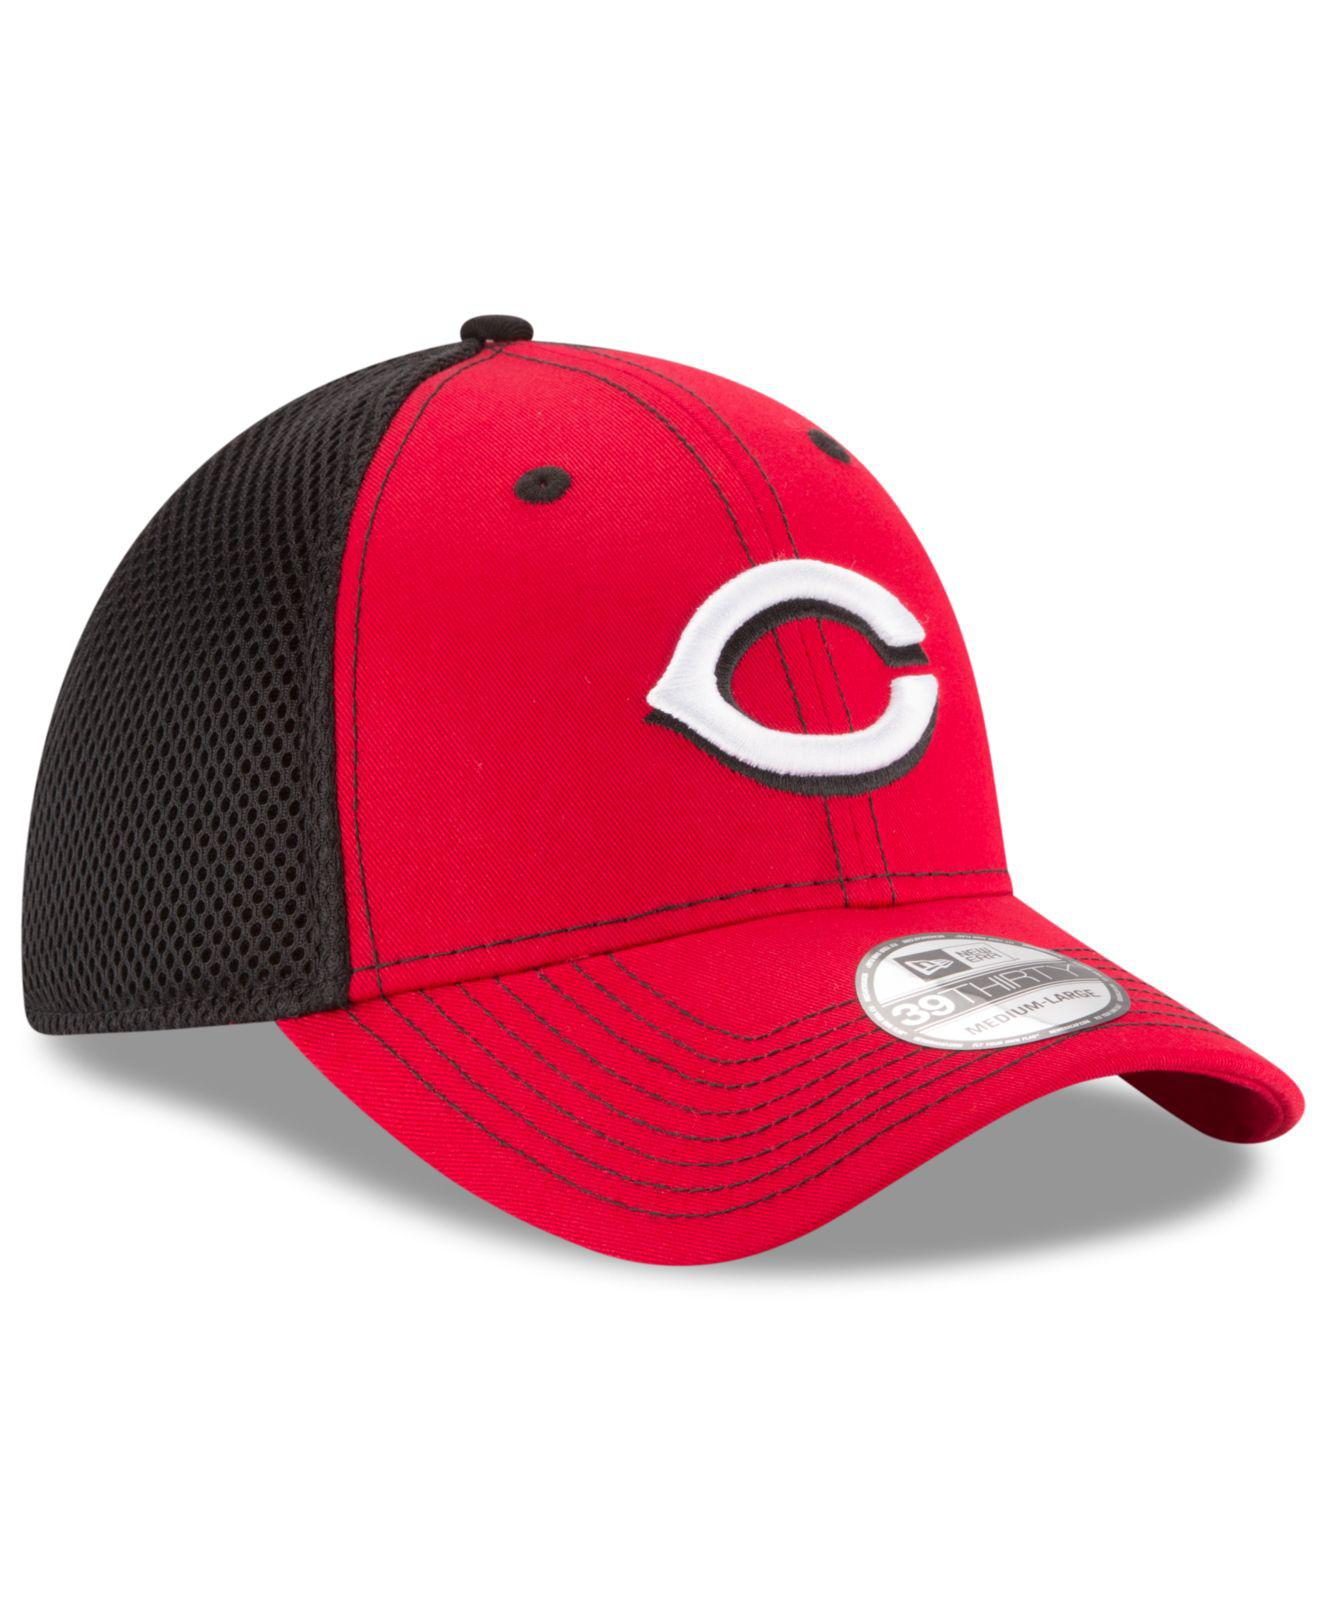 new styles 8fafe 09c90 ... closeout lyst ktz cincinnati reds team front neo 39thirty cap in black  for men 765d5 b2160